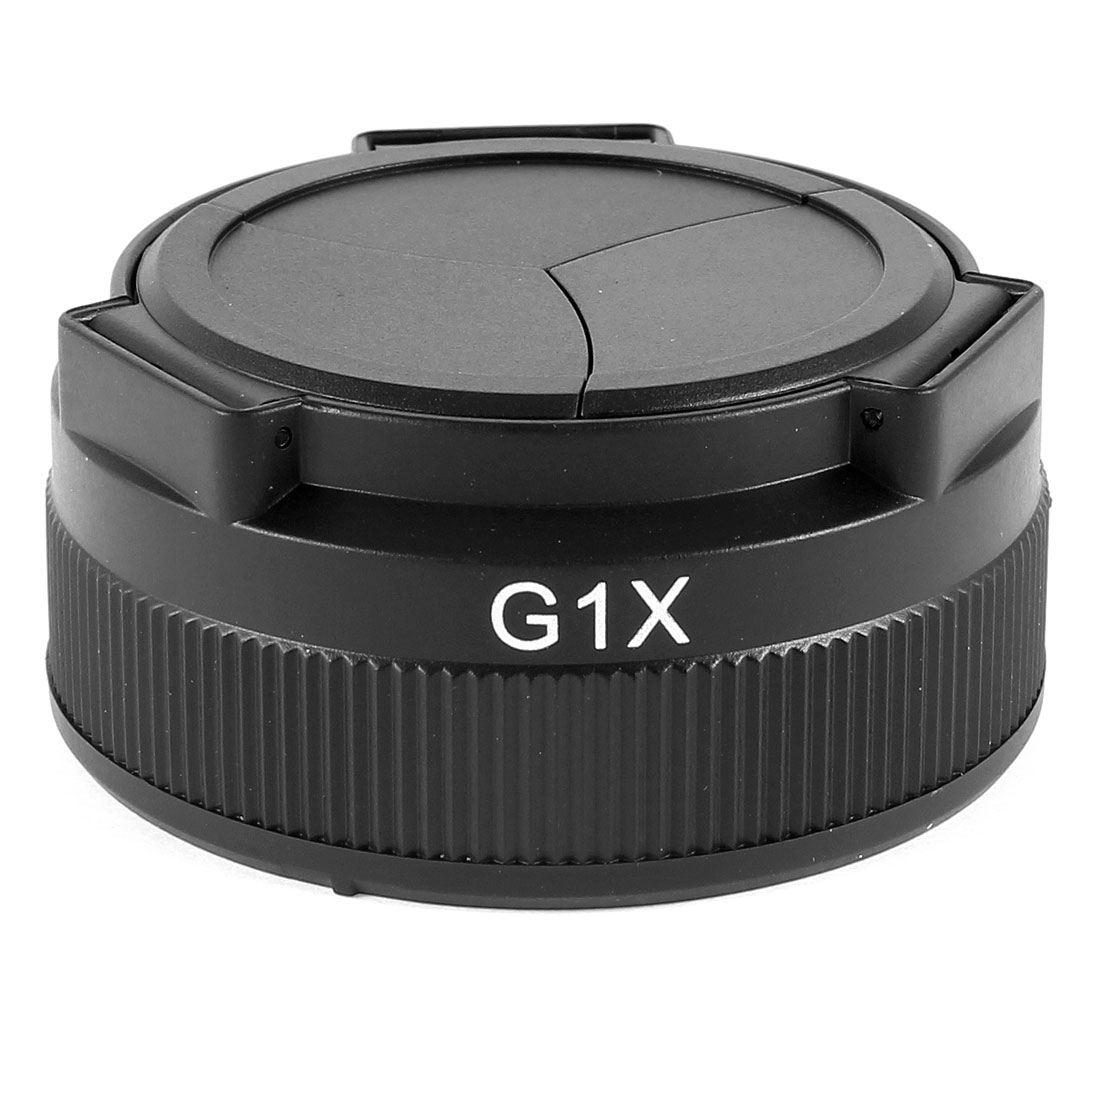 Auto Self Retaining Open Close Lens Cap Cover for  G1X